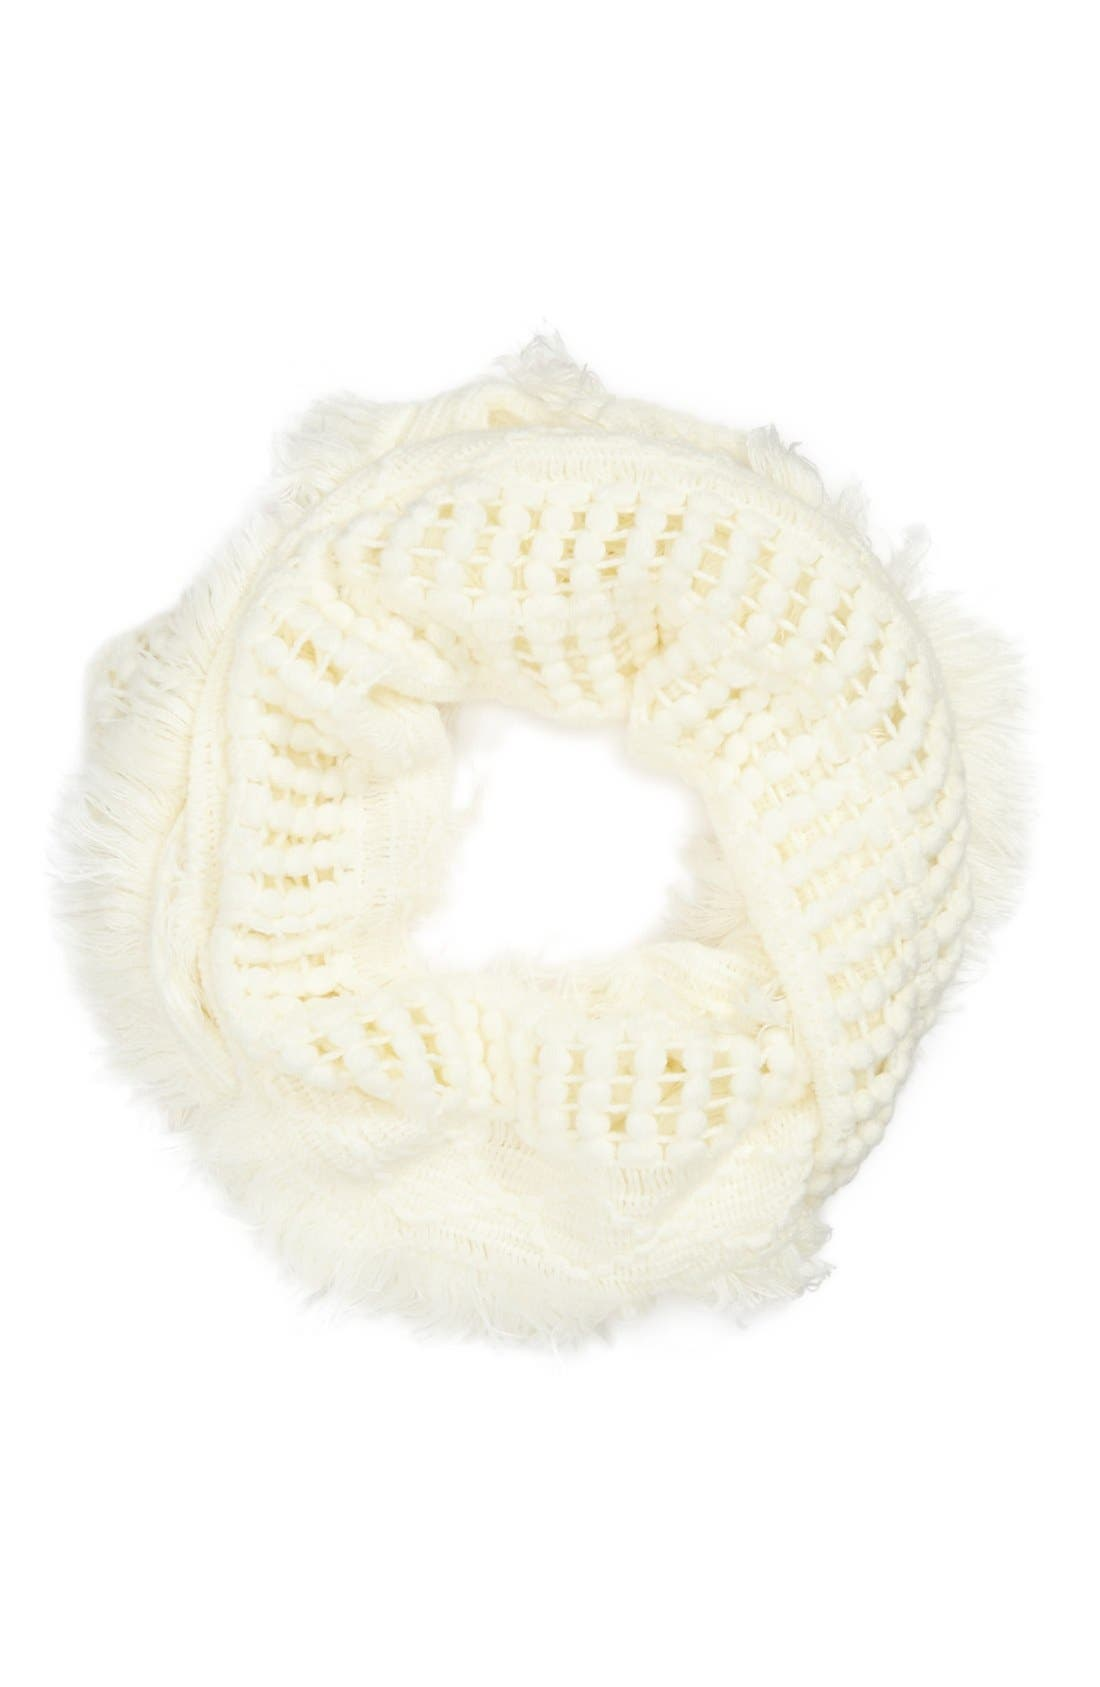 Alternate Image 1 Selected - Capelli of New York Knit Infinity Scarf (Juniors) (Online Only)